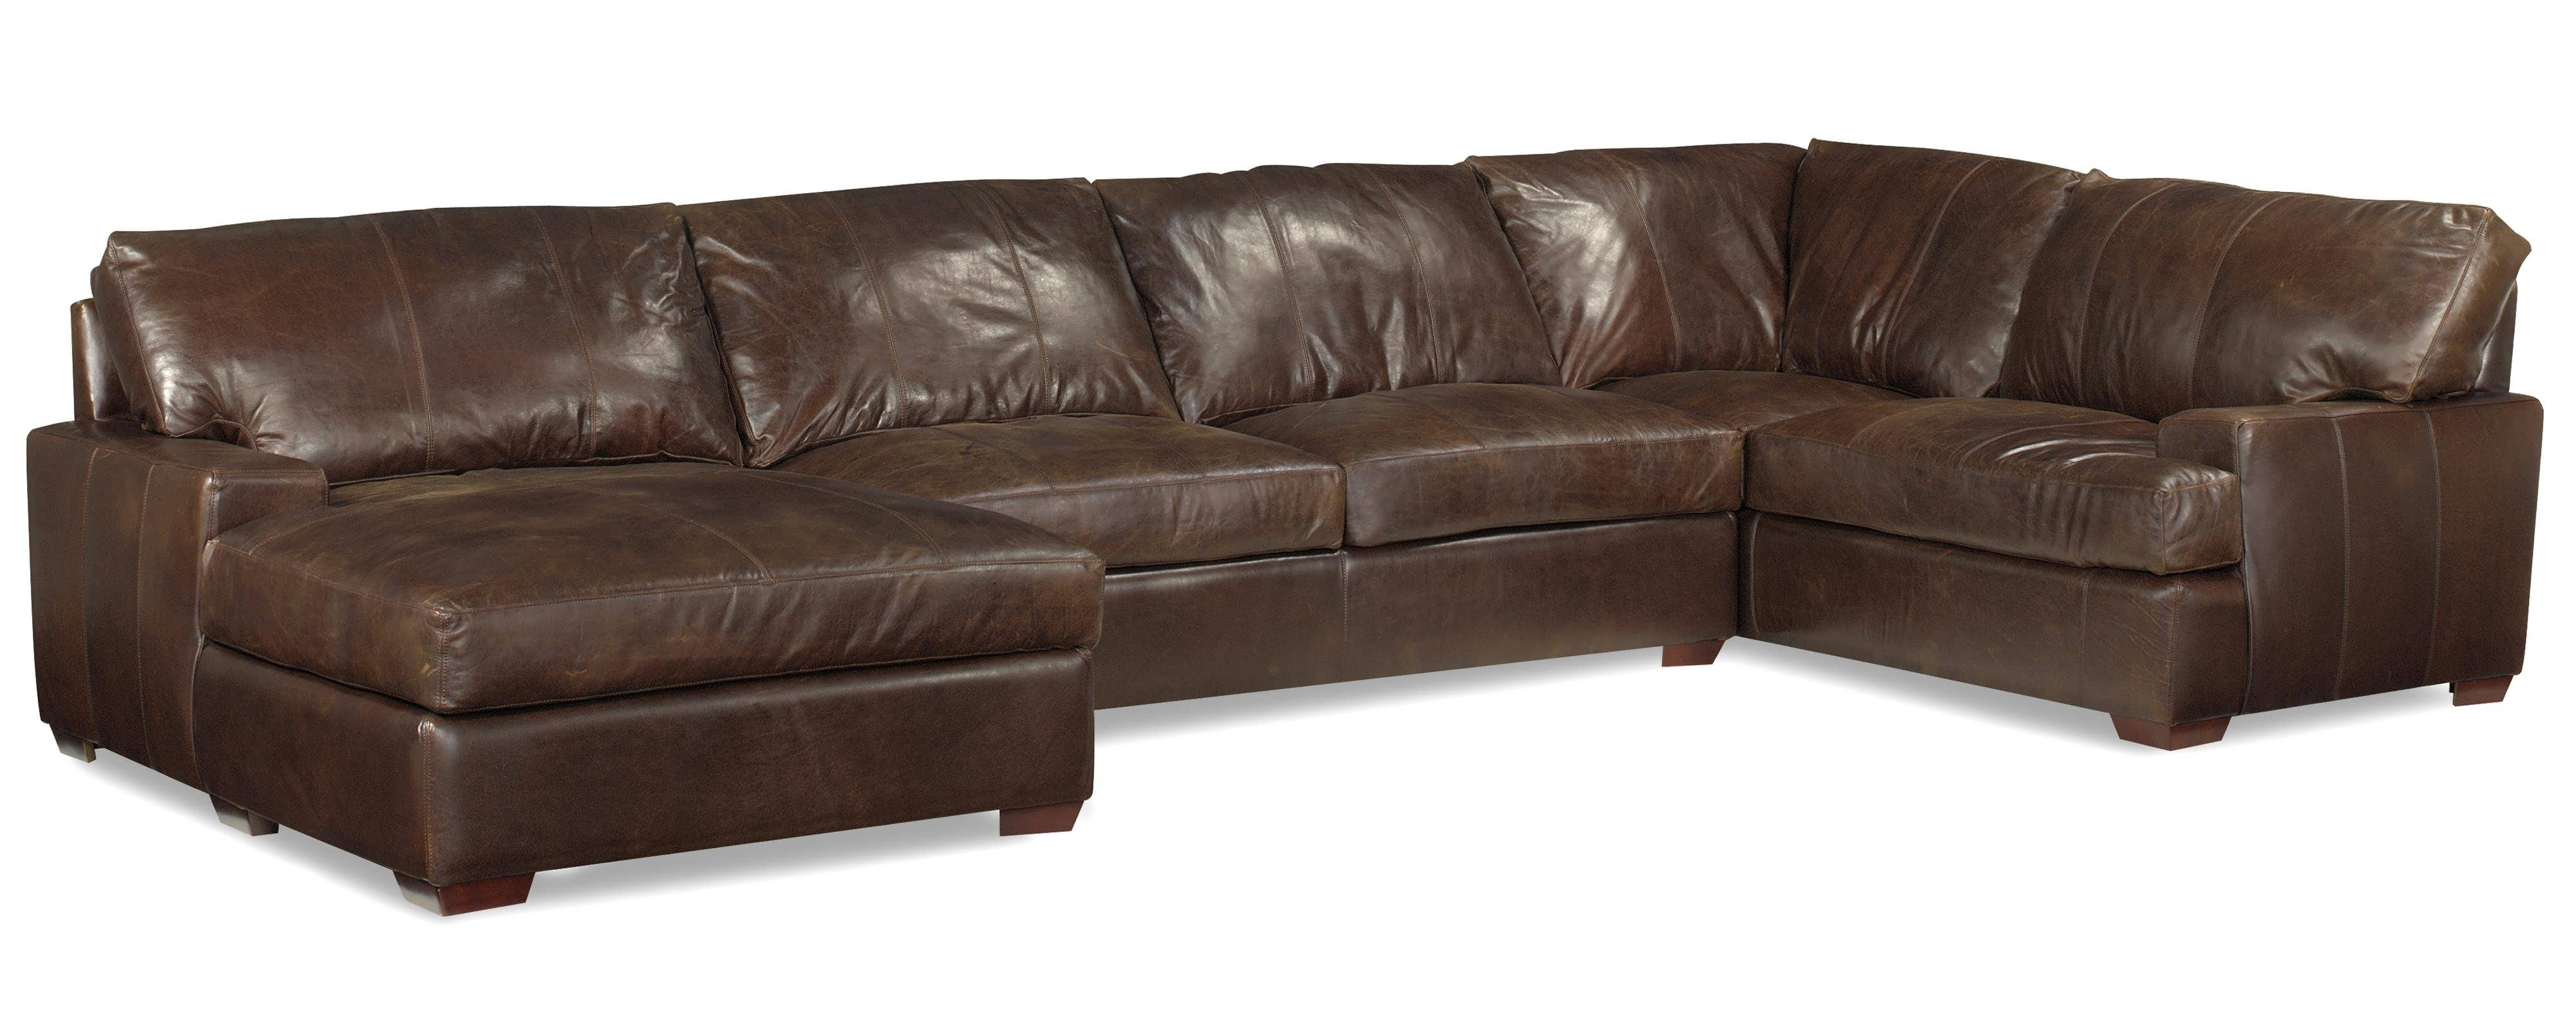 2017 Sofa : Small Sectional Couch Best Sectional Sofa Fabric Sectional With Genuine Leather Sectionals With Chaise (View 2 of 15)